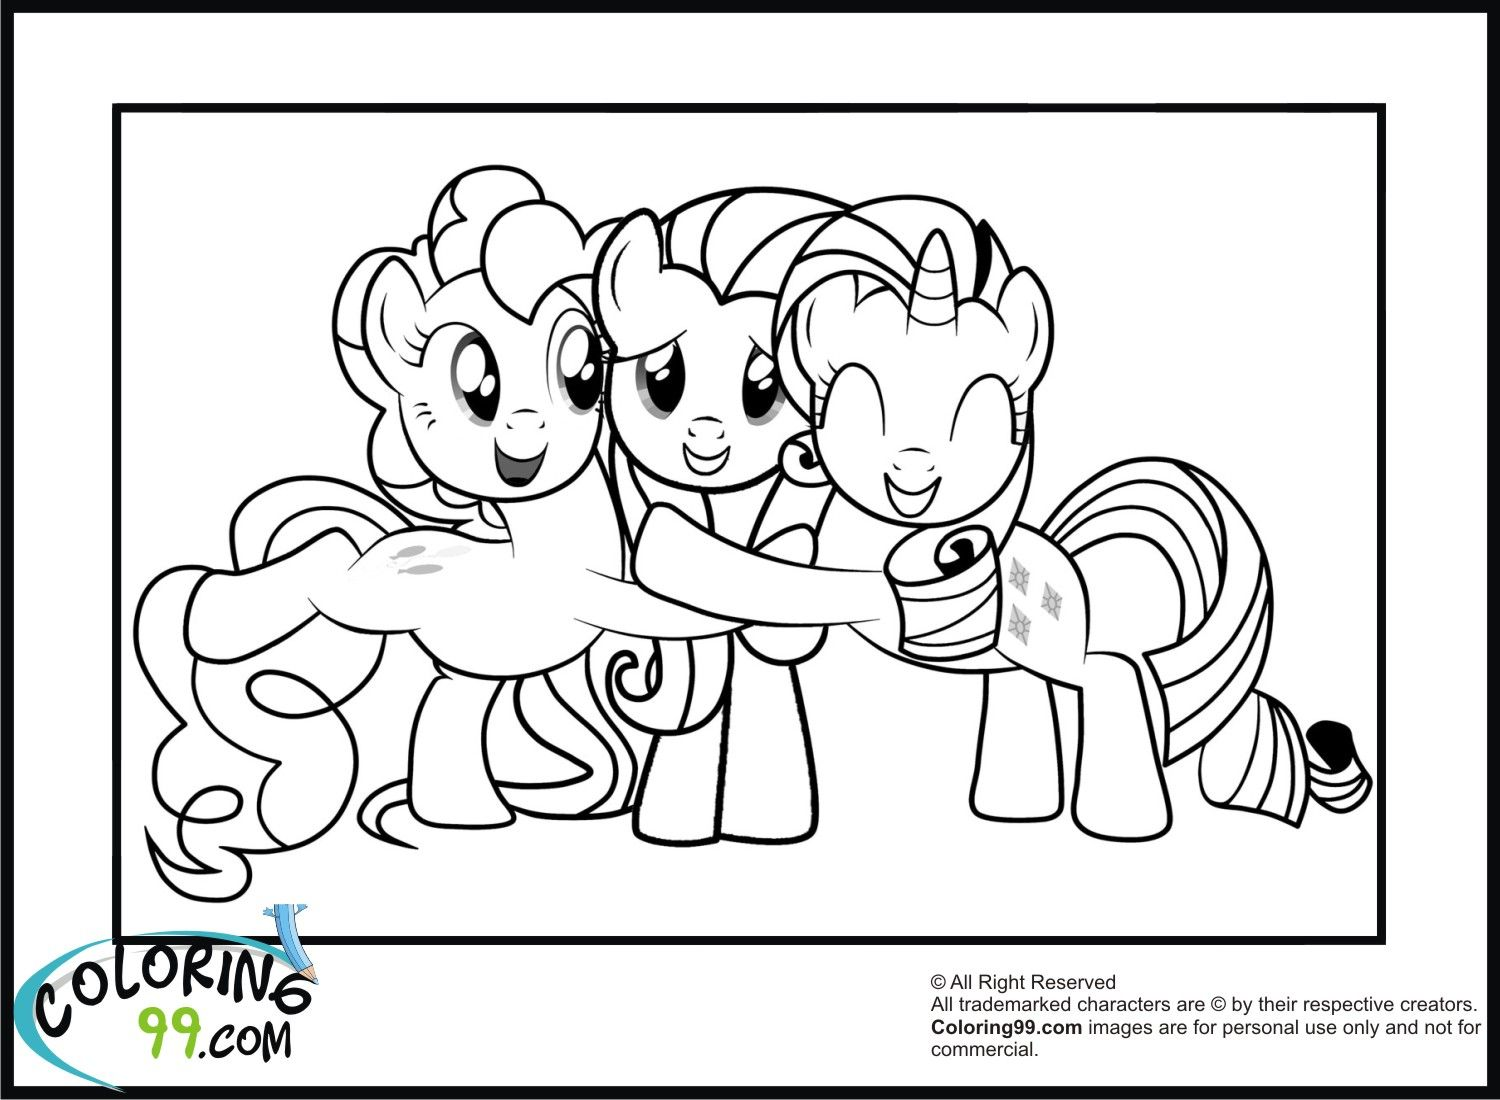 Rarity Fluttershy And Pinkie Pie Coloring Pages Jpg 1500 1100 My Little Pony Coloring Coloring Pages My Little Pony